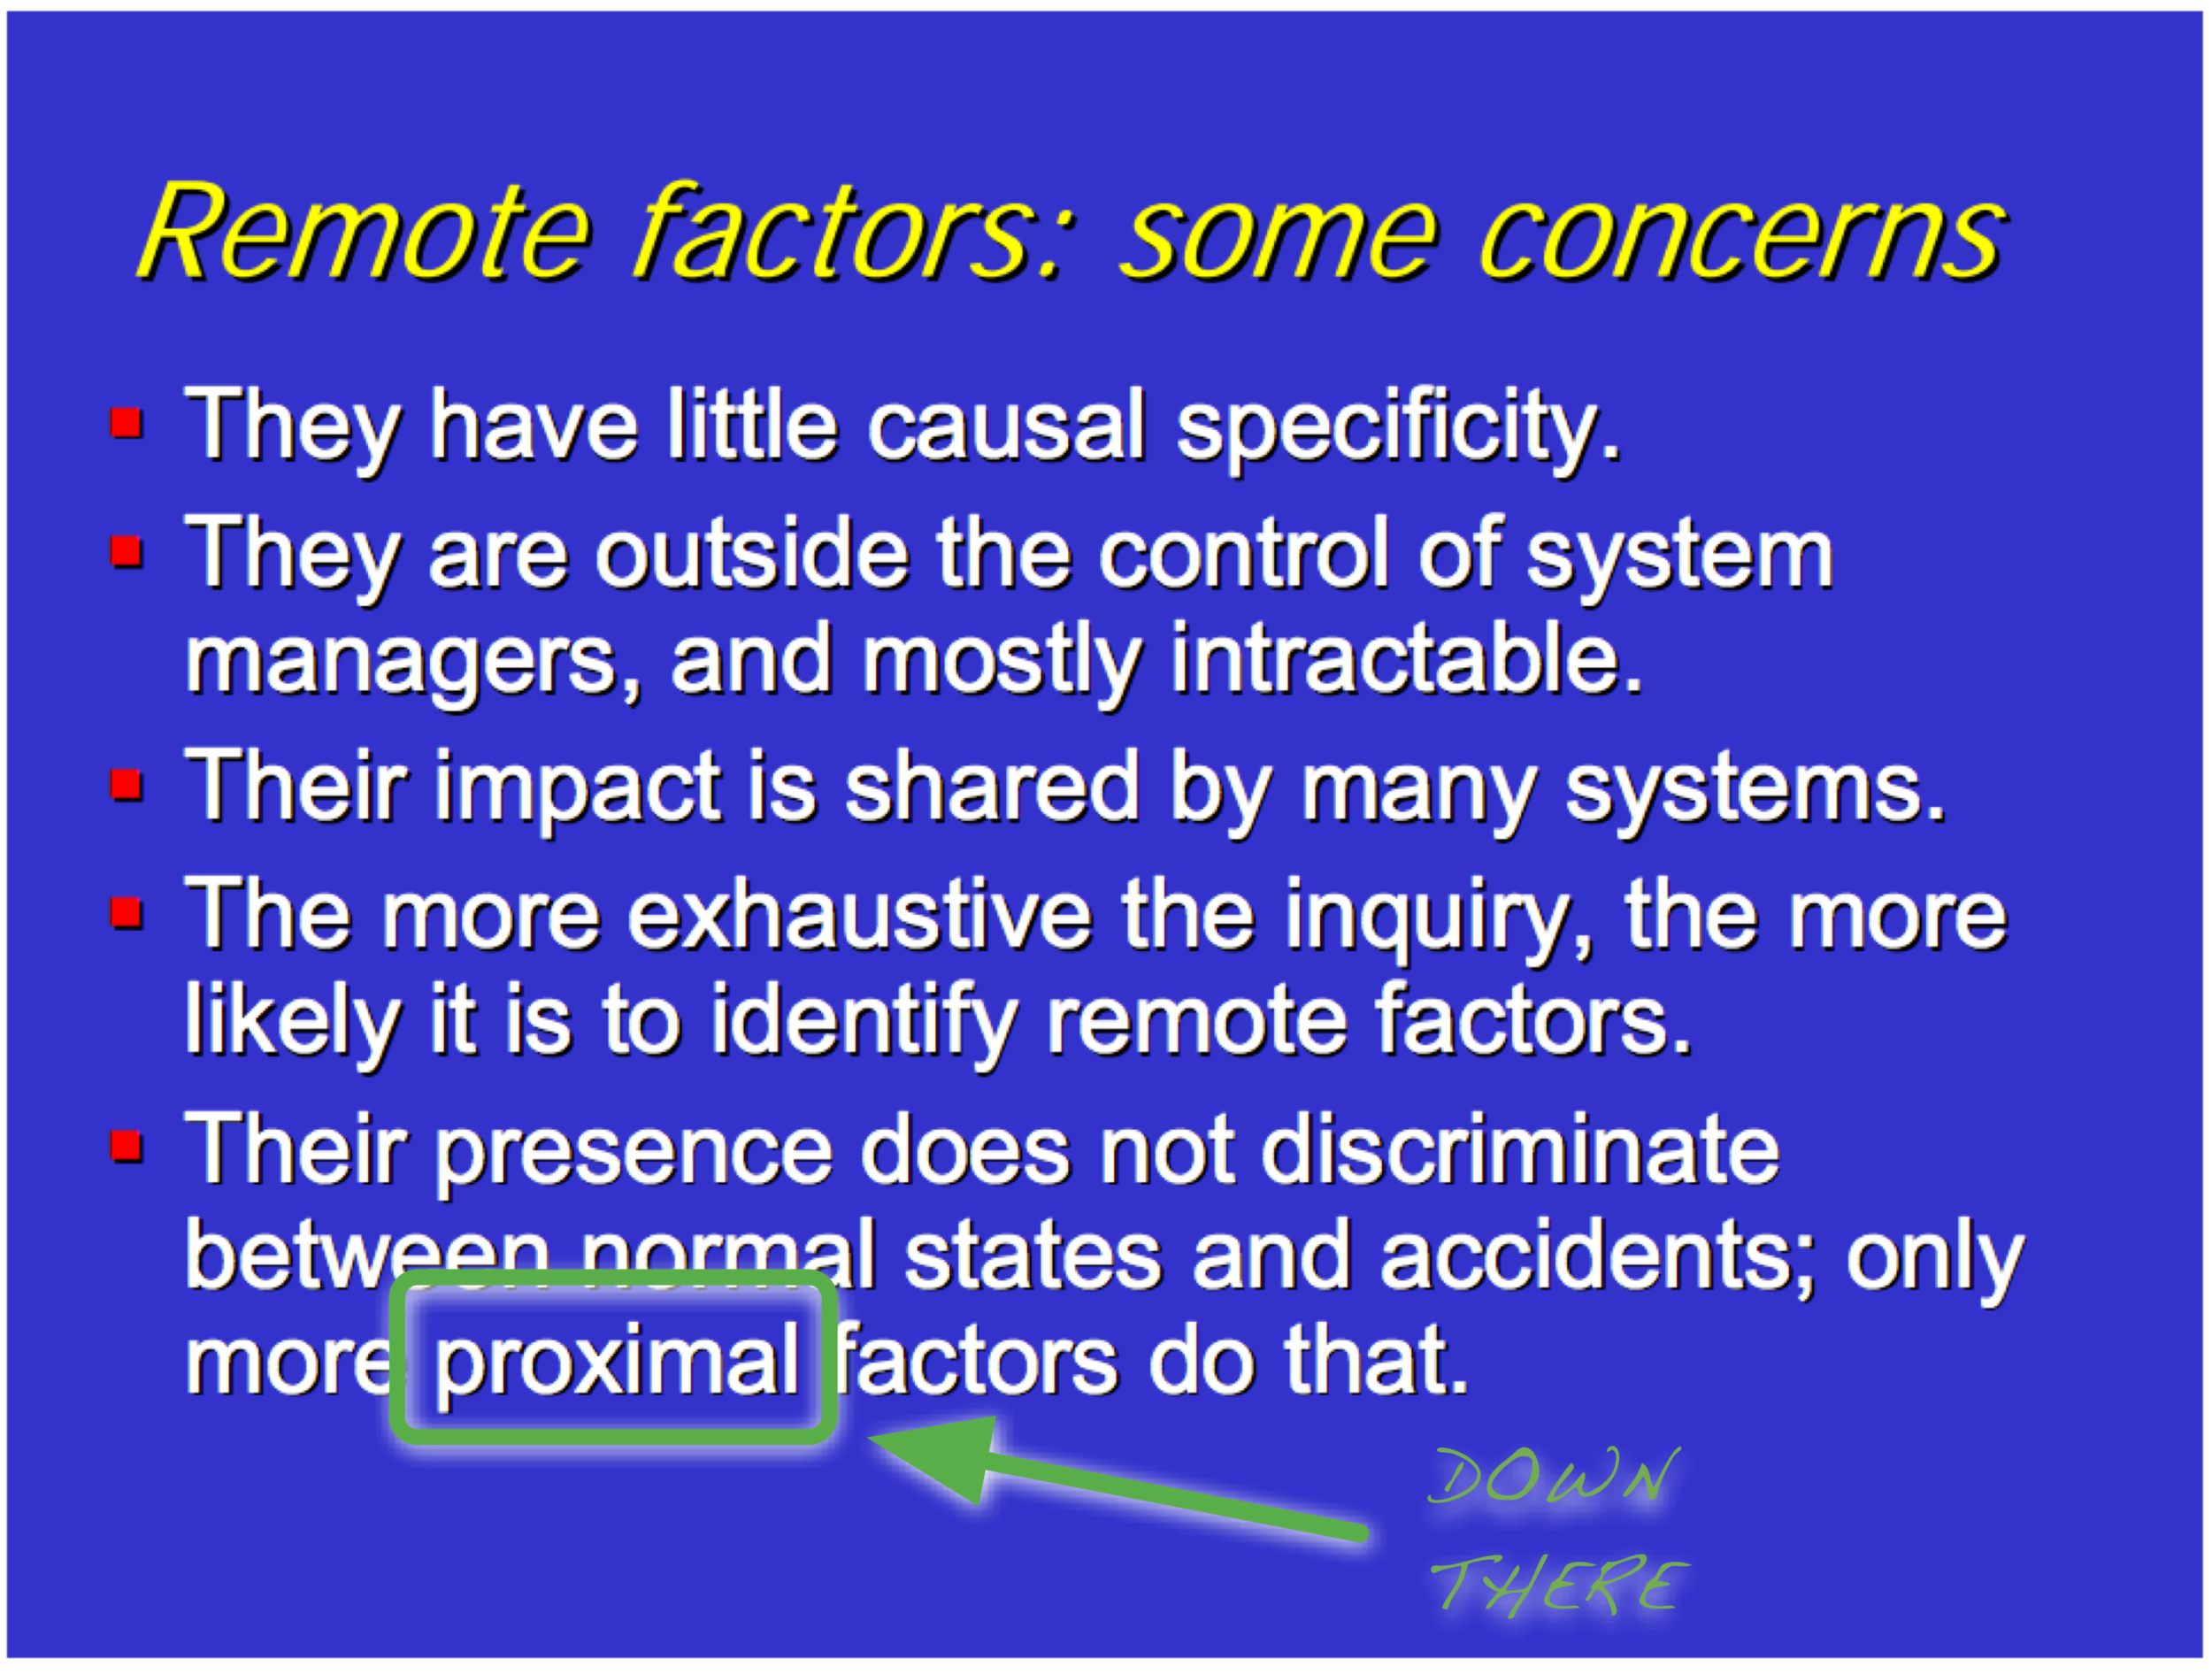 Here Reason mentions proximal factors as opposed to remote factors